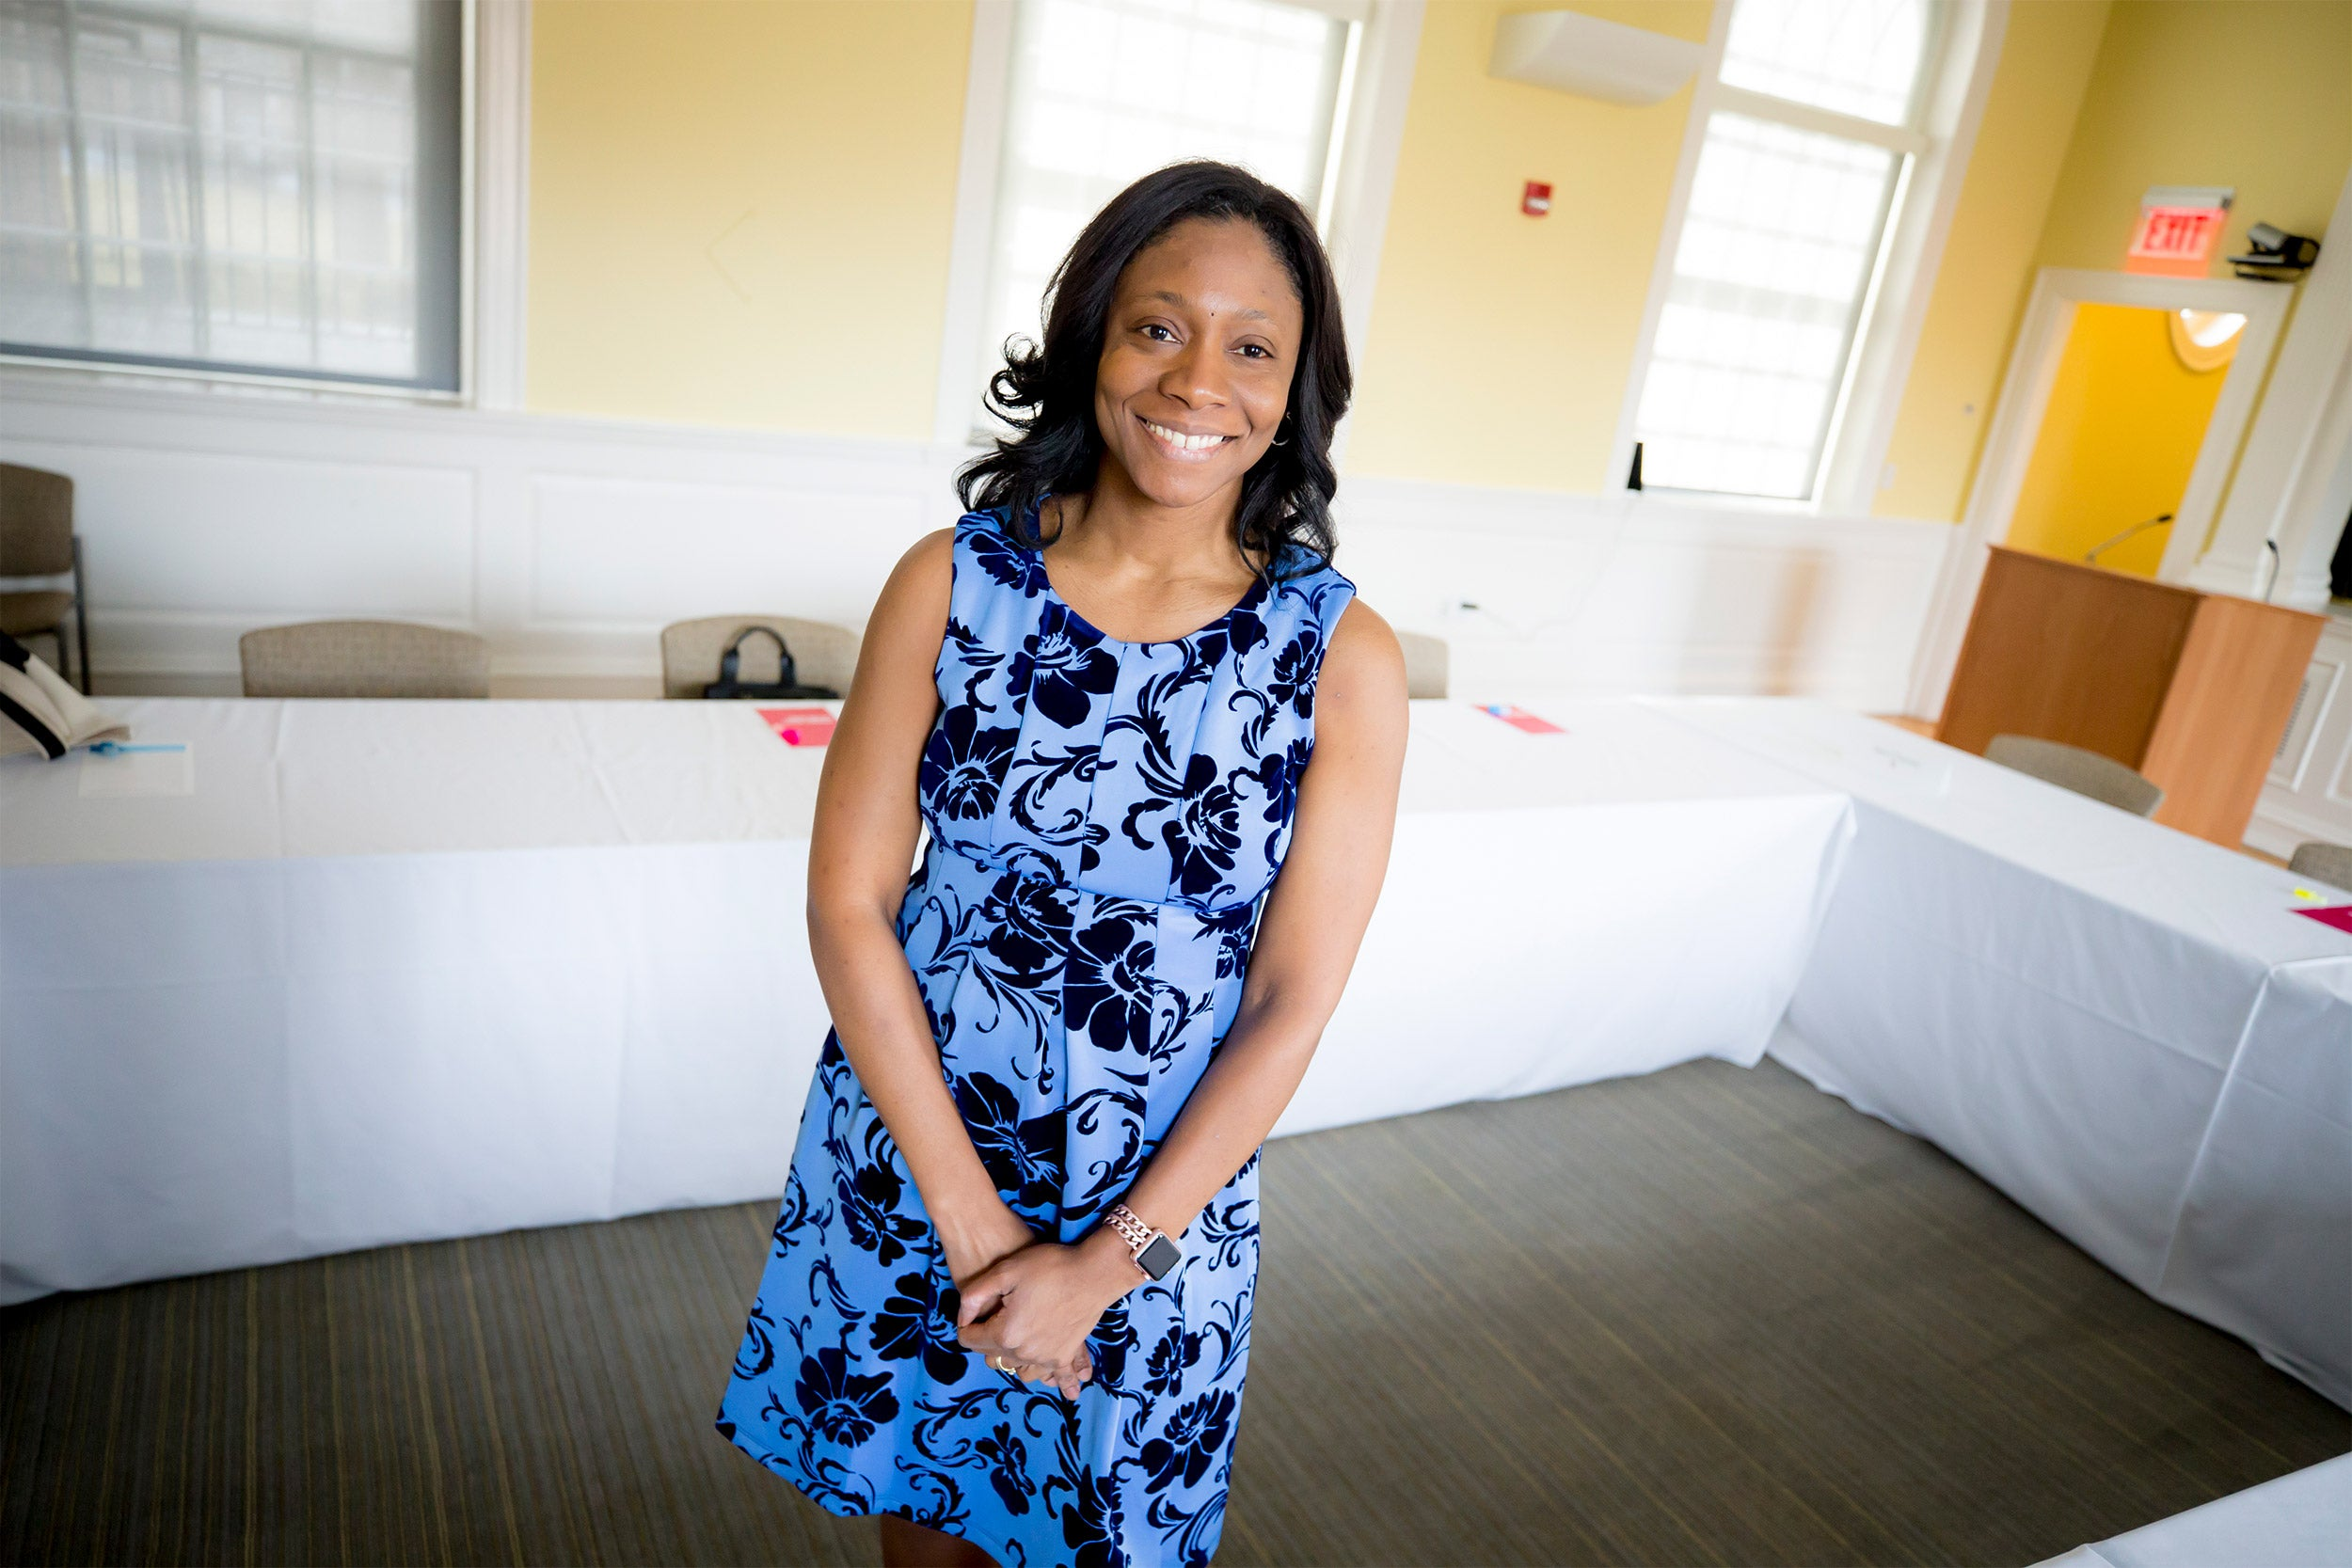 Fatima Cody Stanford, a leading expert on obesity, is exploring the impact of behavioral and environmental factors in the complex processes of weight regulation.